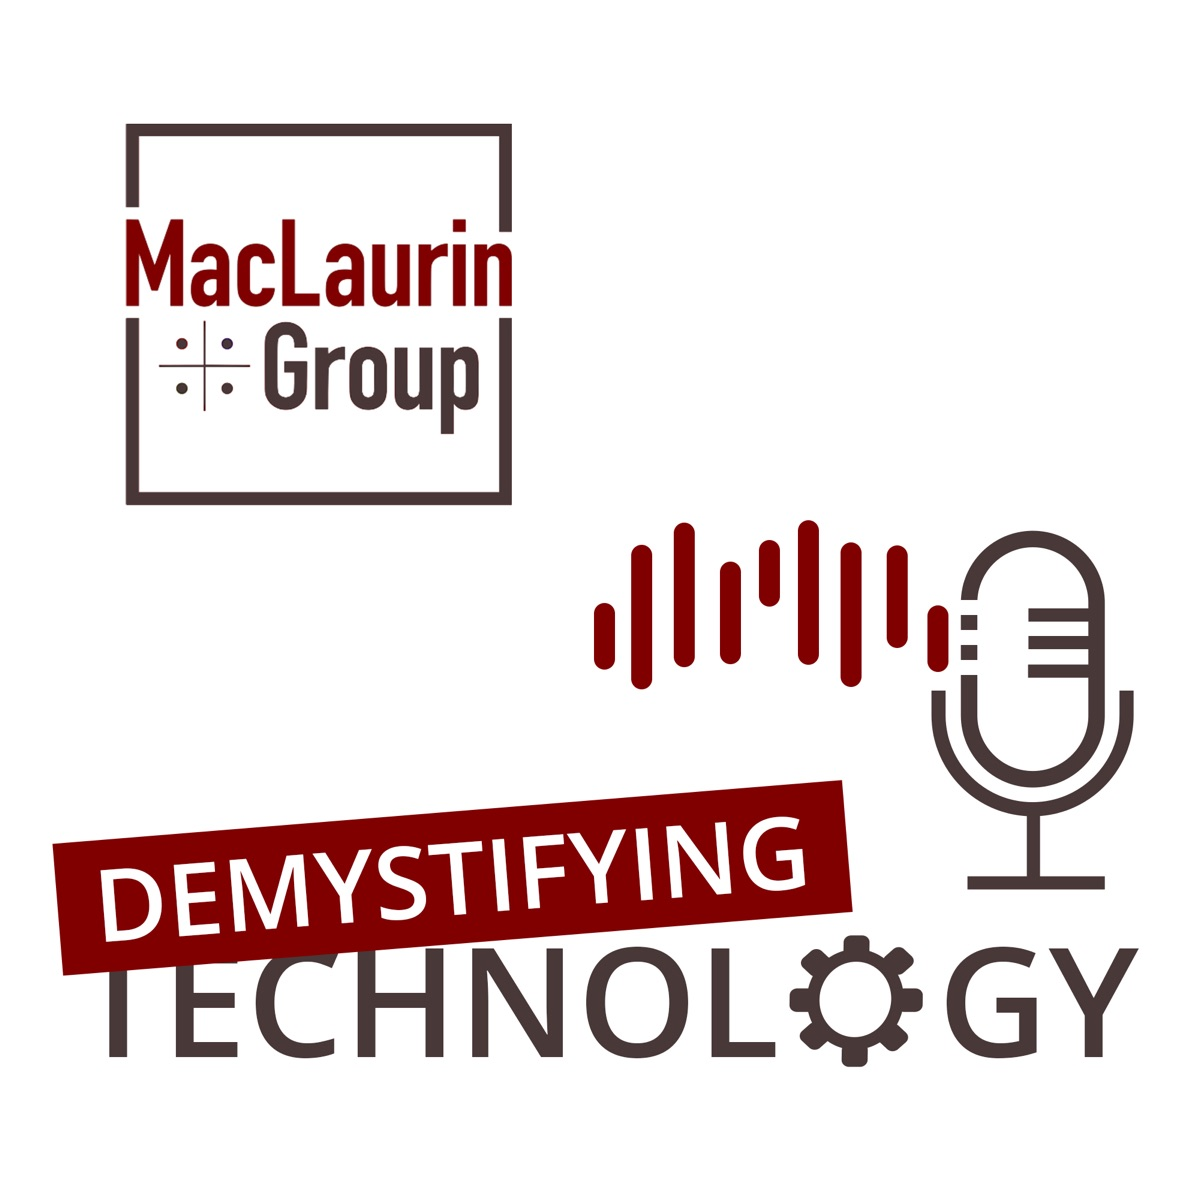 Demystifying Technology by the MacLaurin Group